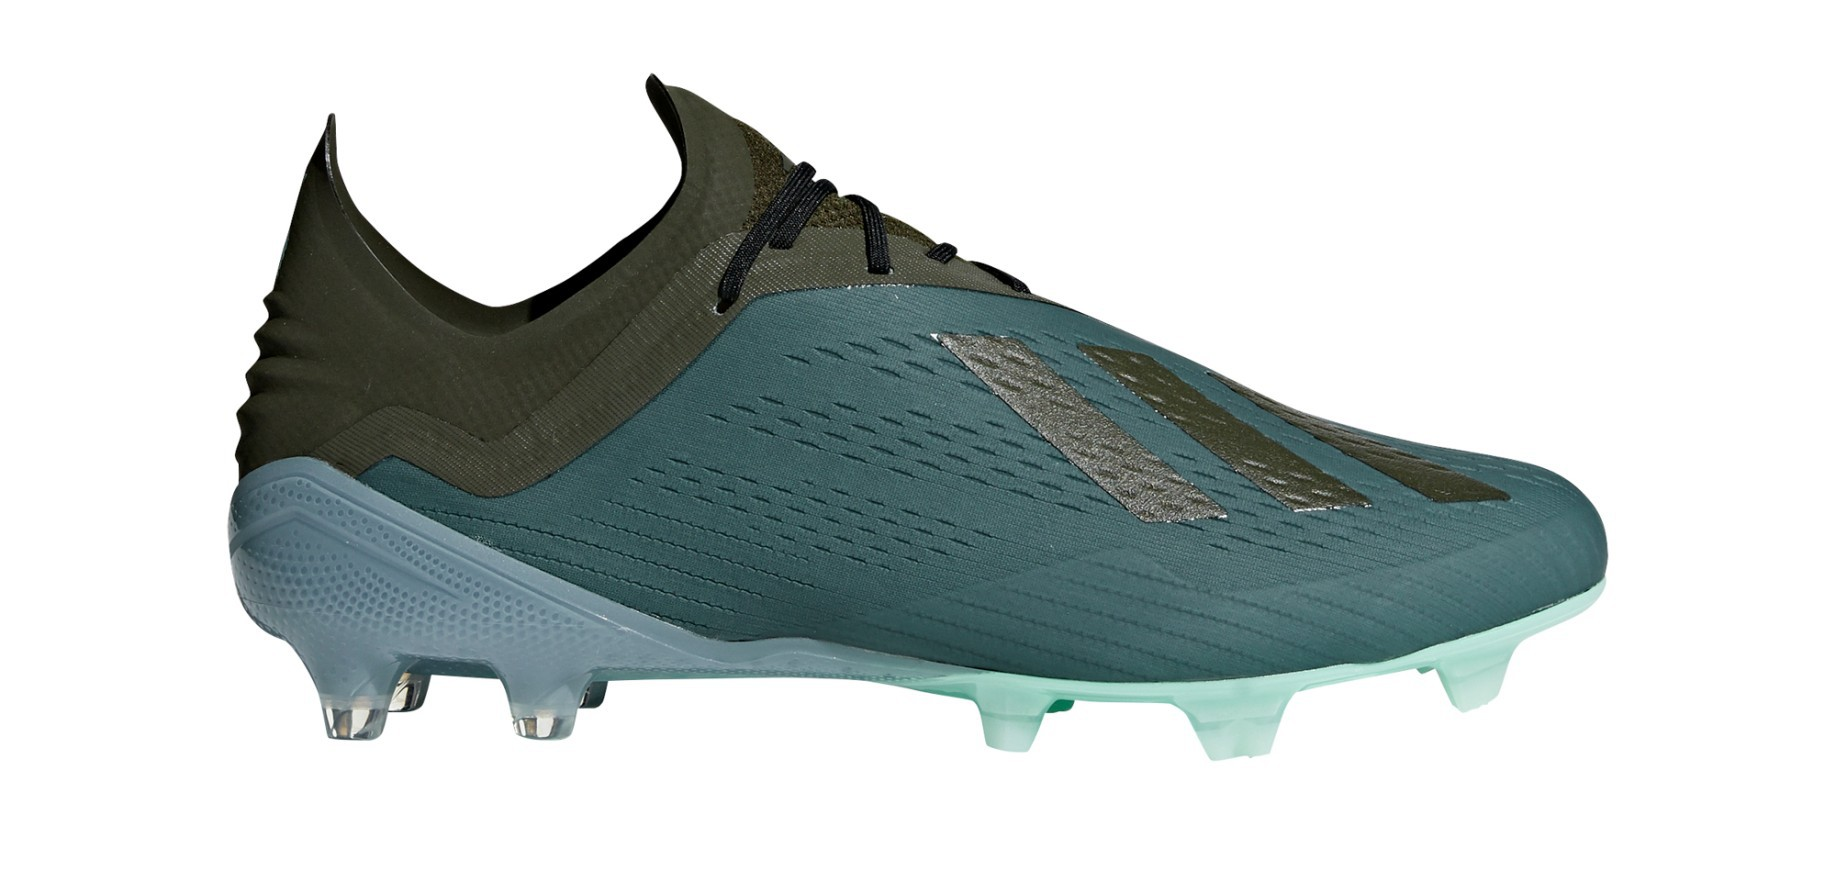 outlet store 4fd1f 88d3f Football boots Adidas X 18.1 FG Cold Mode Pack colore Green Black - Adidas  - SportIT.com